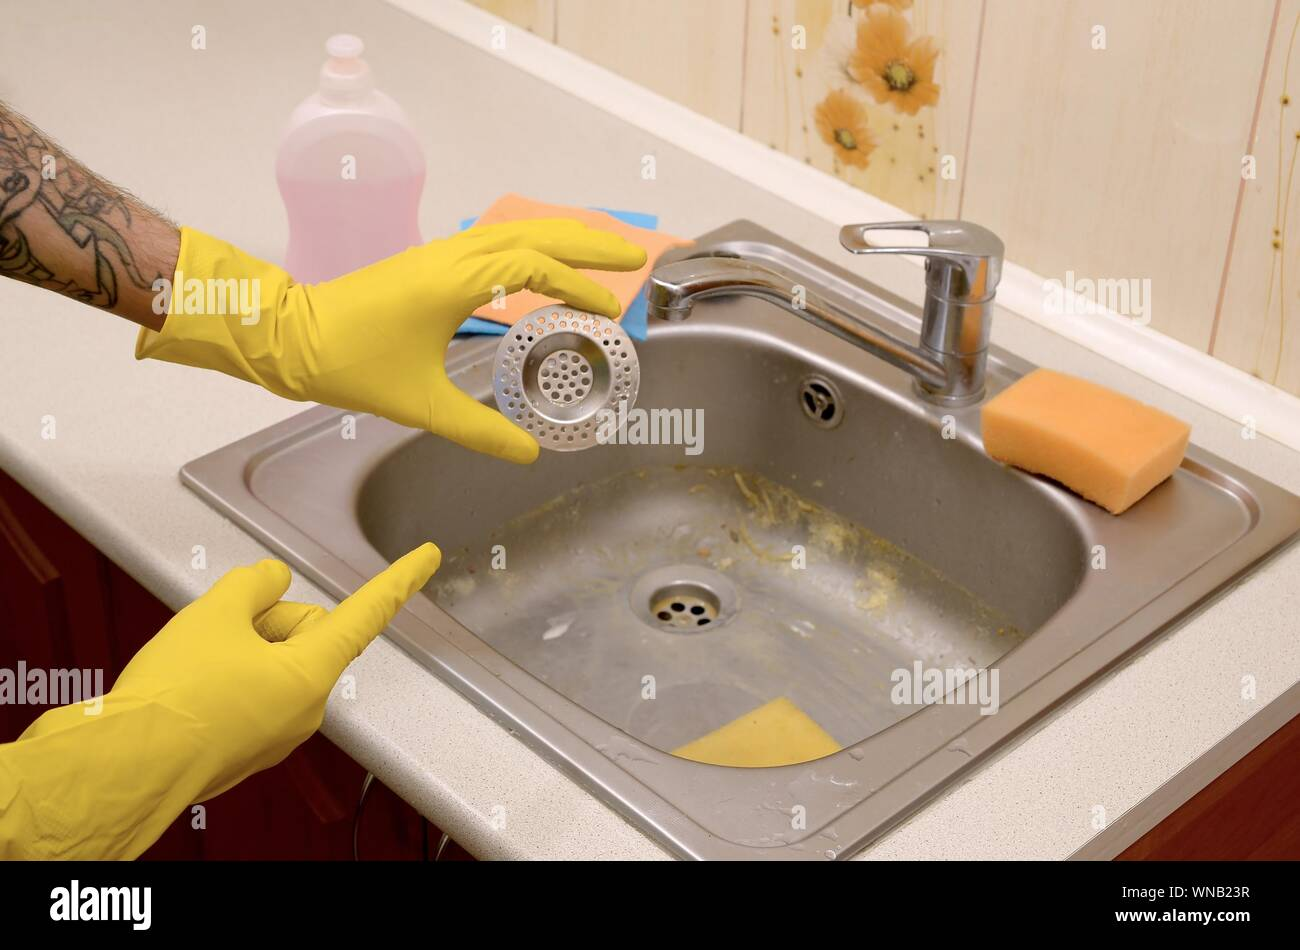 https www alamy com cleaner in rubber gloves shows clean plughole protector of a kitchen sink steel sink drain filter trash traps grid of drainage holes image271306443 html